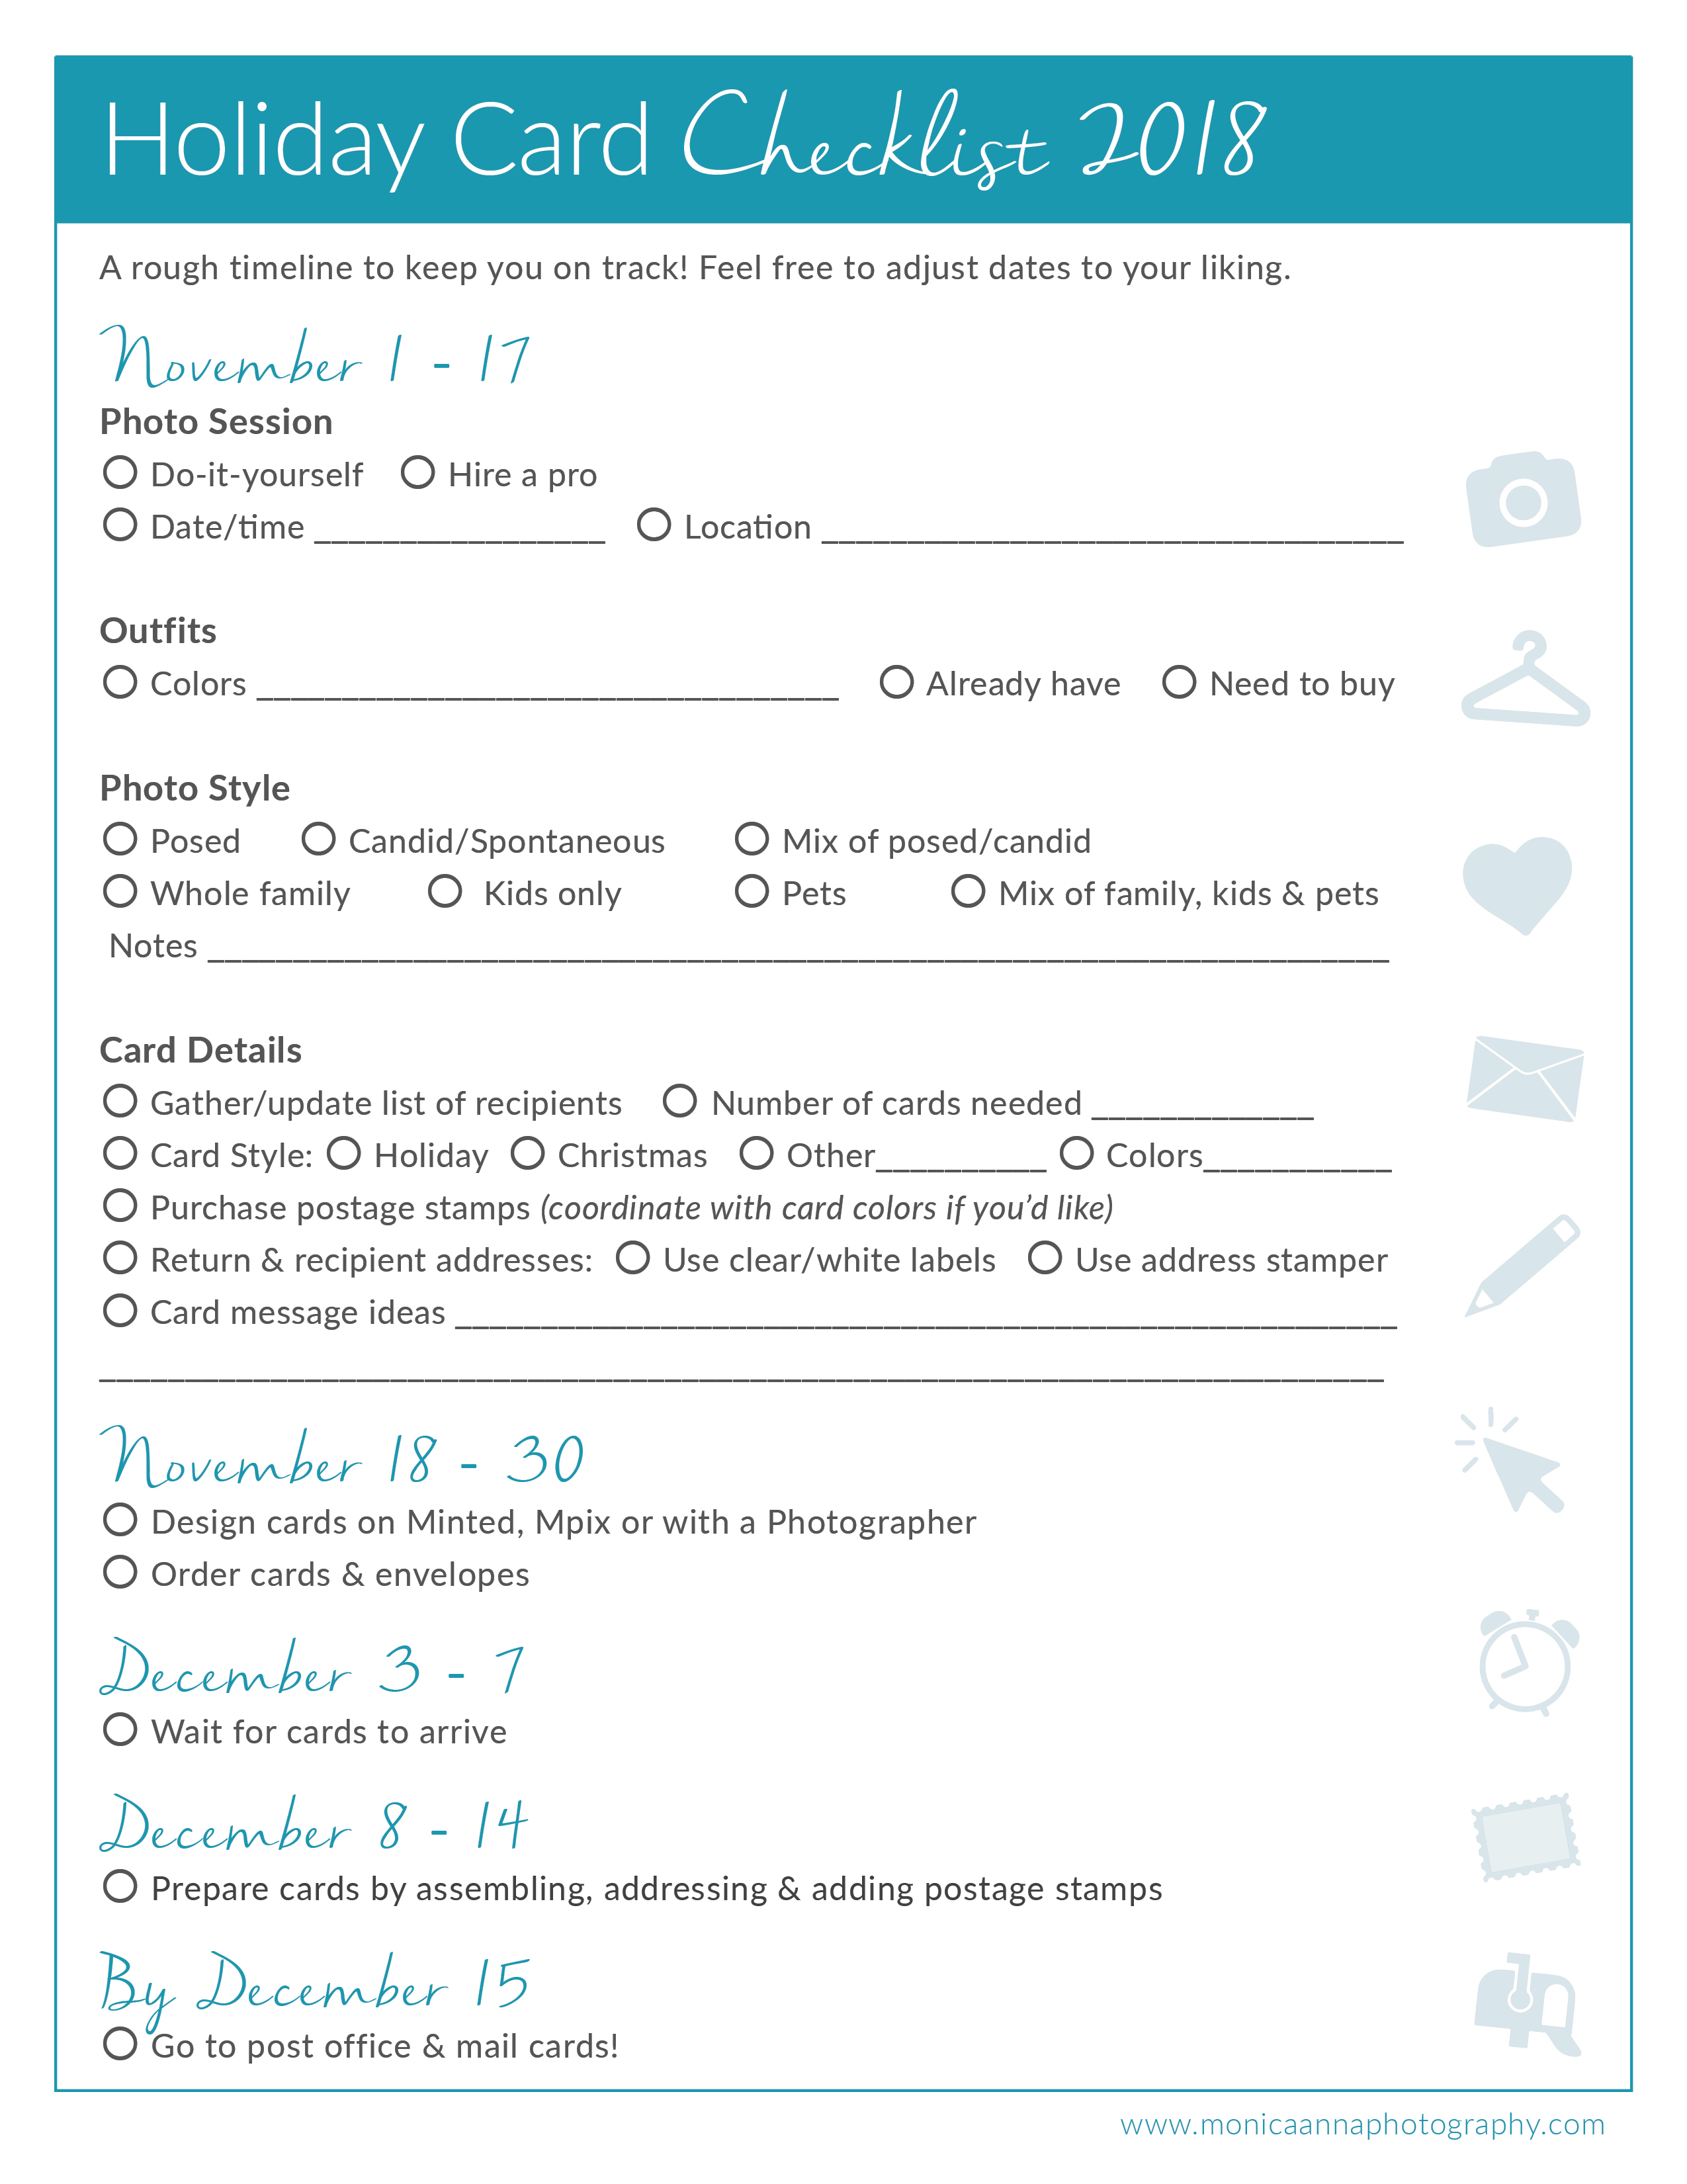 Checklist for Holiday Cards with Family Photos